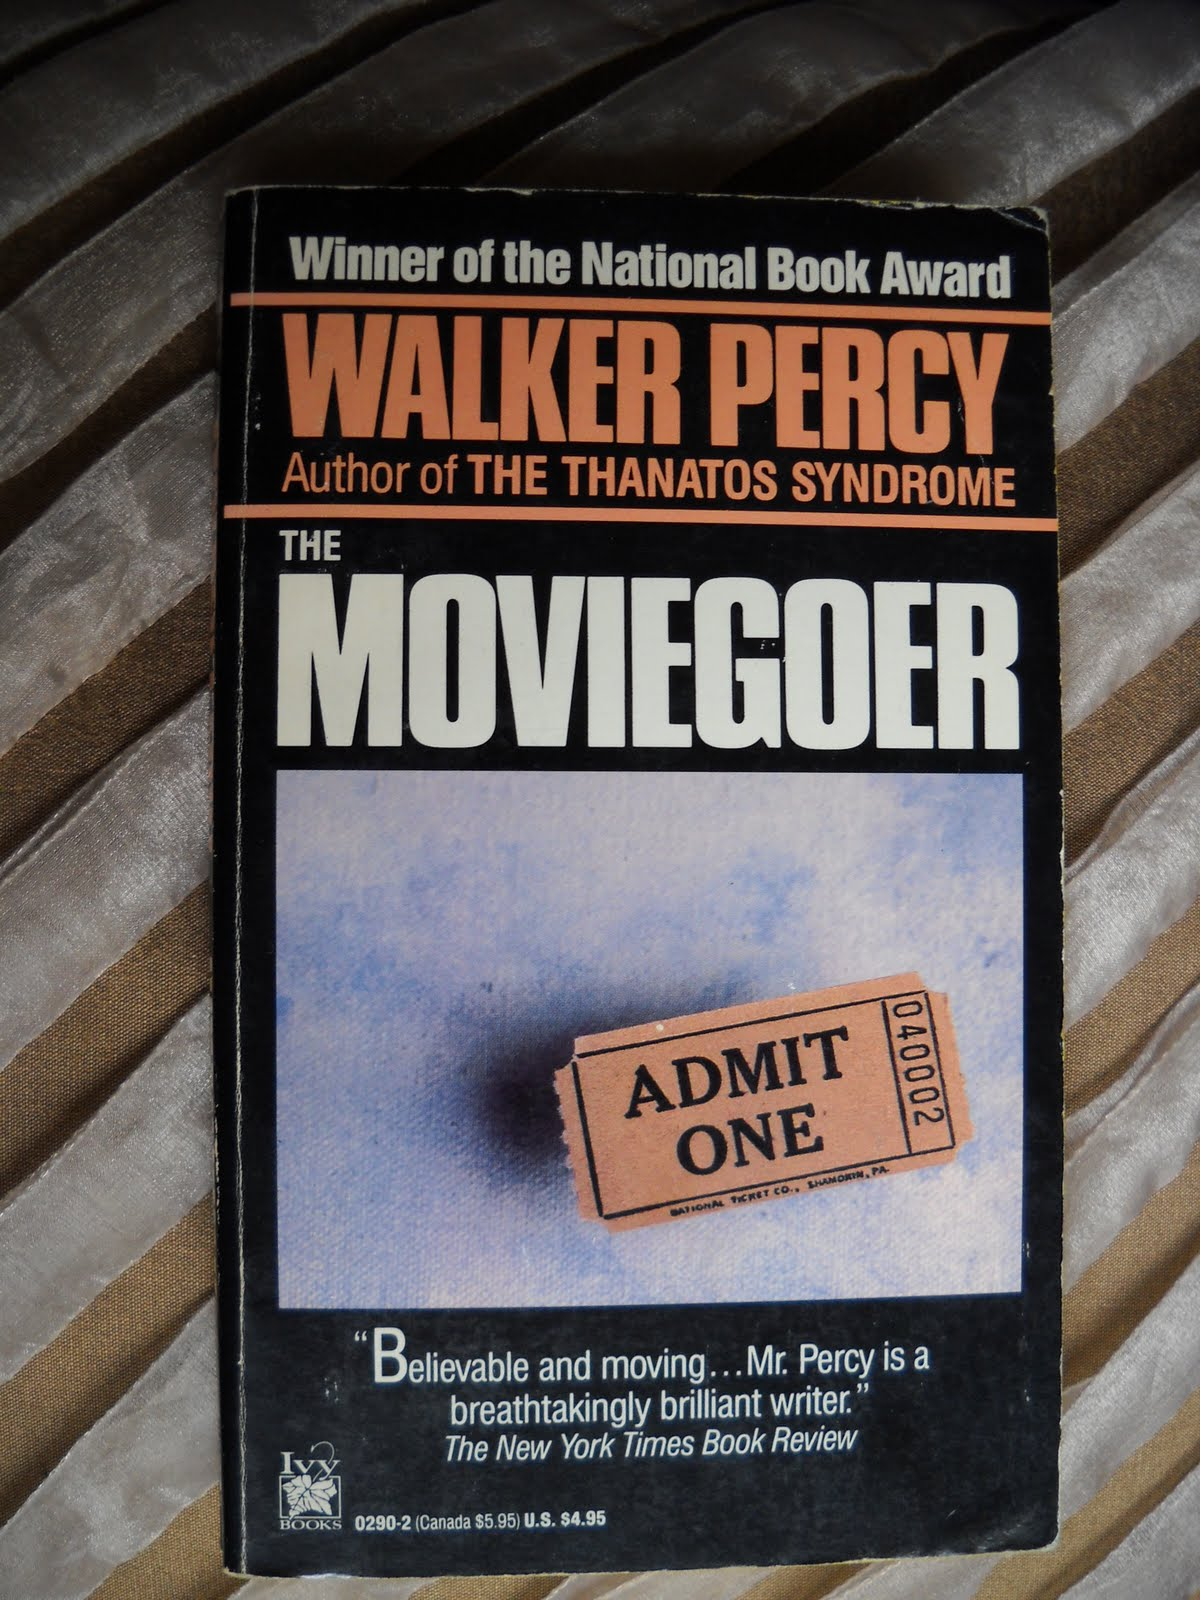 the character of binx bolling in the moviegoer by walker percy By martha ashe in his widely celebrated novel, the moviegoer (1961), walker  percy presents the intriguingly complex protagonist binx bolling in the  he  observes—acquaintances and strangers alike—into basic character.